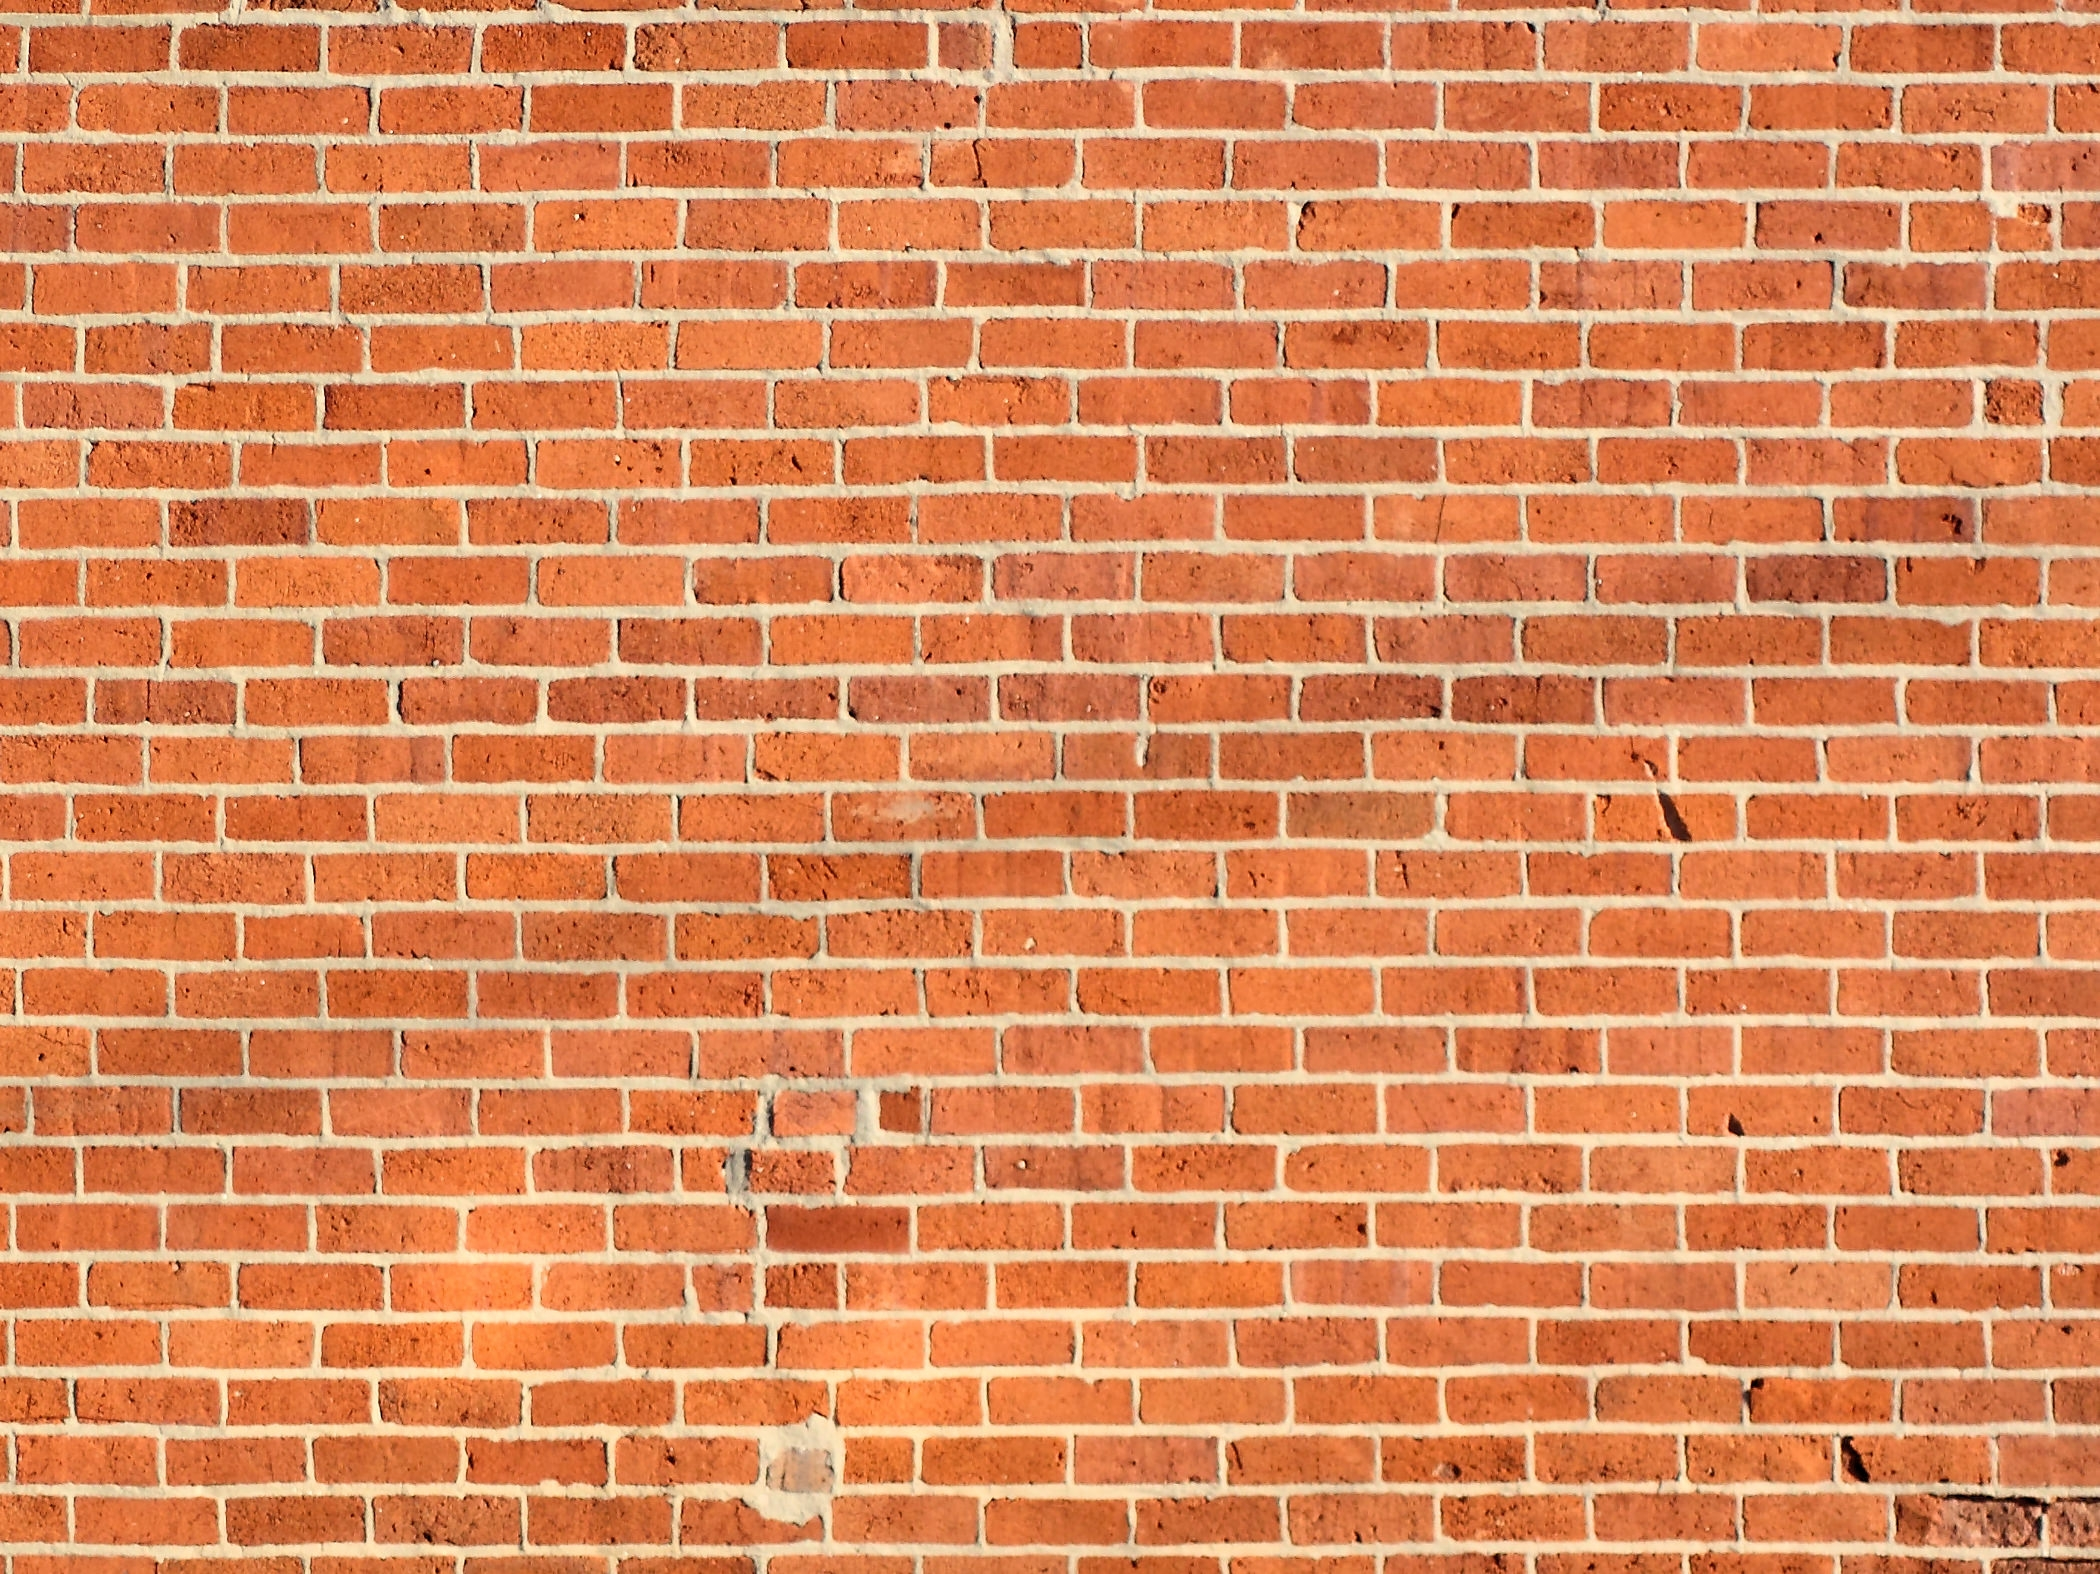 35+ Brick Wall Backgrounds, Images, Pictures | FreeCreatives